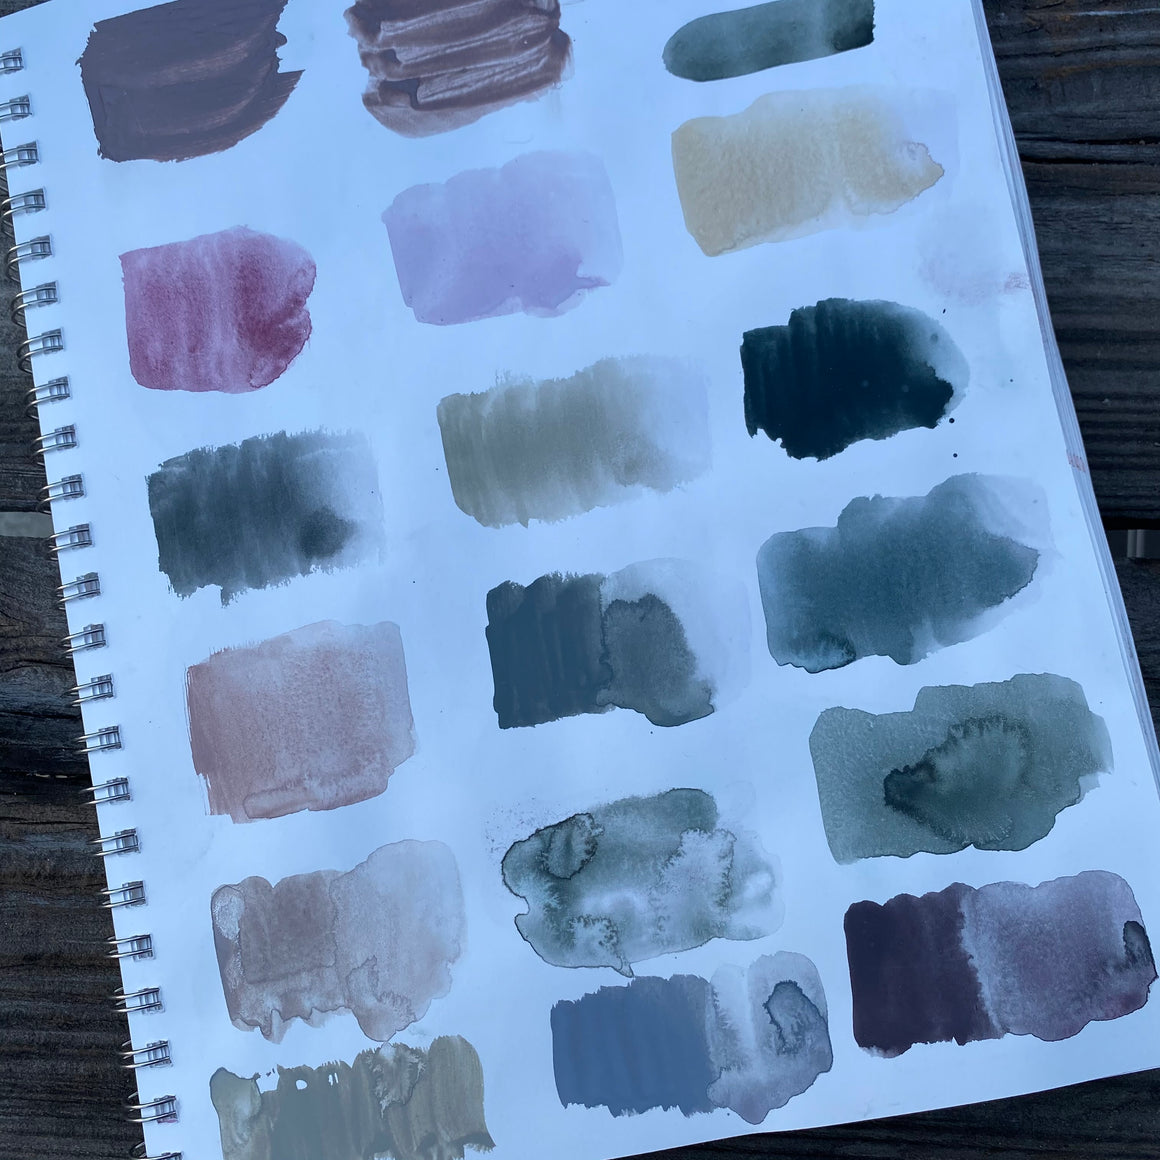 SUNRISE STUDIO hand-mixed #tracibautistaCOLOR pigment kit + paint swatching workshop